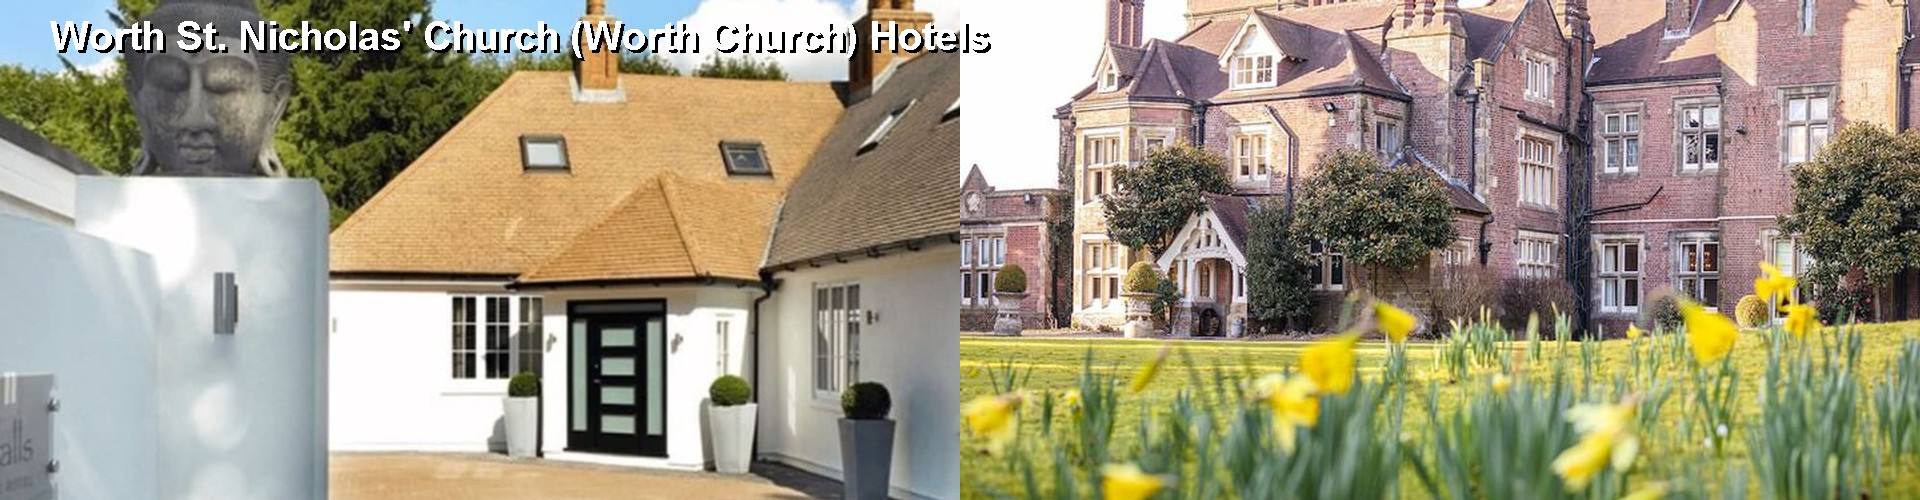 5 Best Hotels near Worth St. Nicholas' Church (Worth Church)